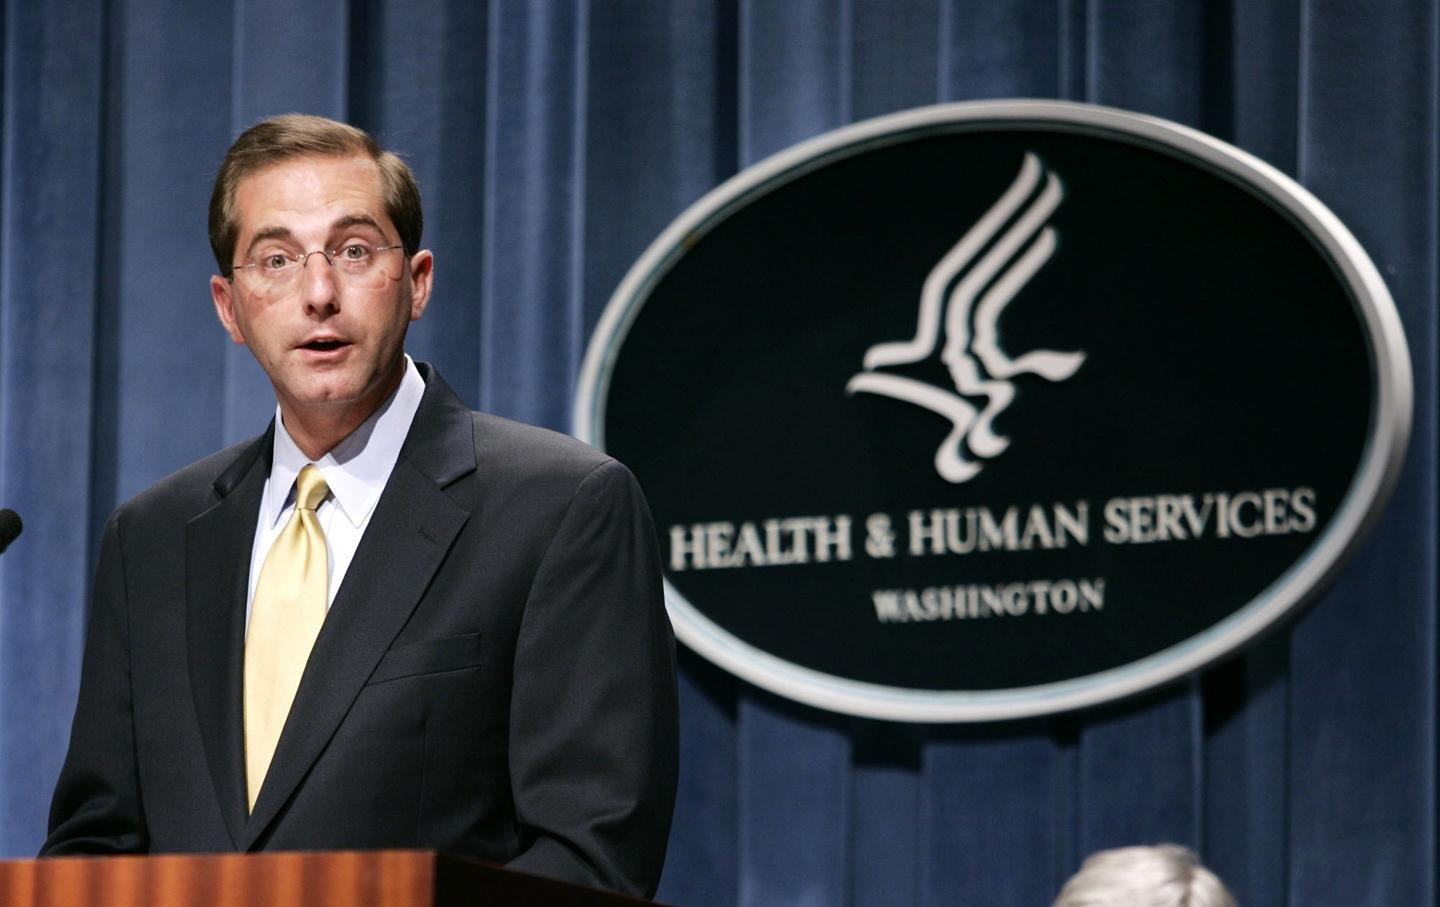 Alex Azar, Trump's HHS Pick, Has Already Been a Disaster for People With Diabetes